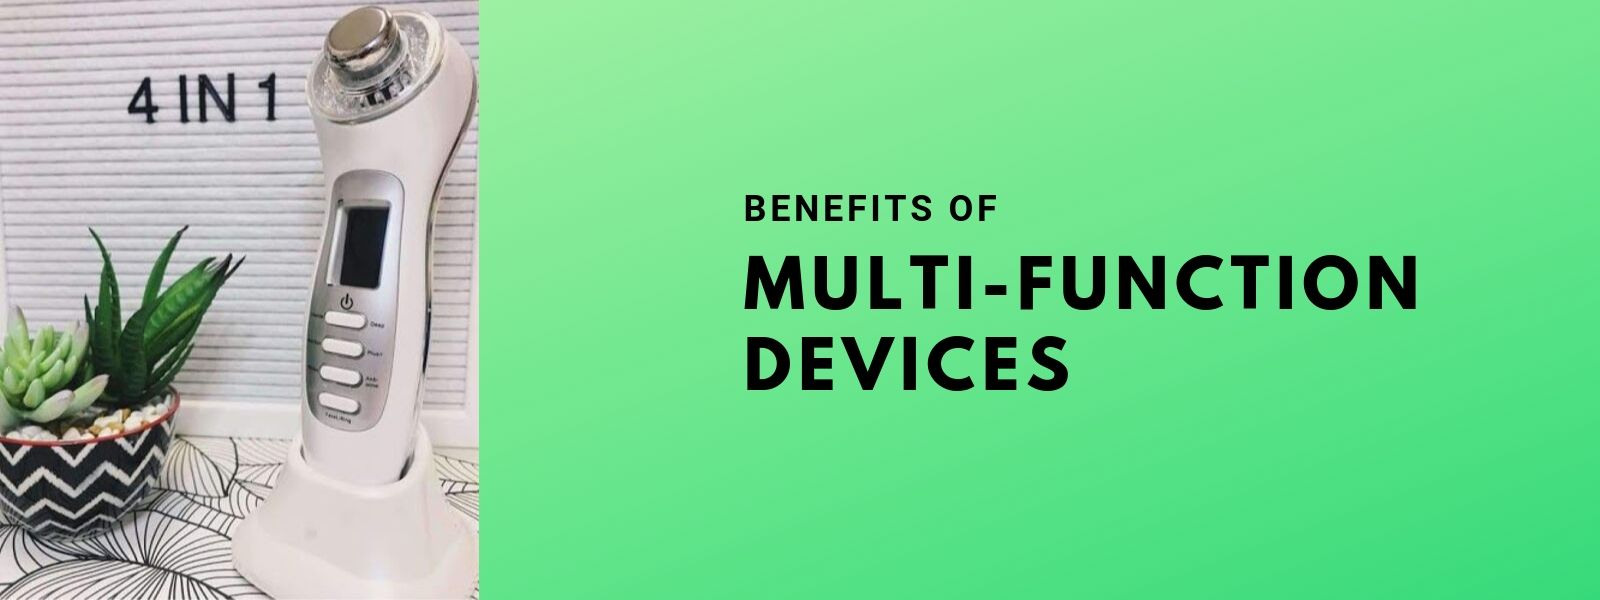 Benefits of Multi-Function Devices